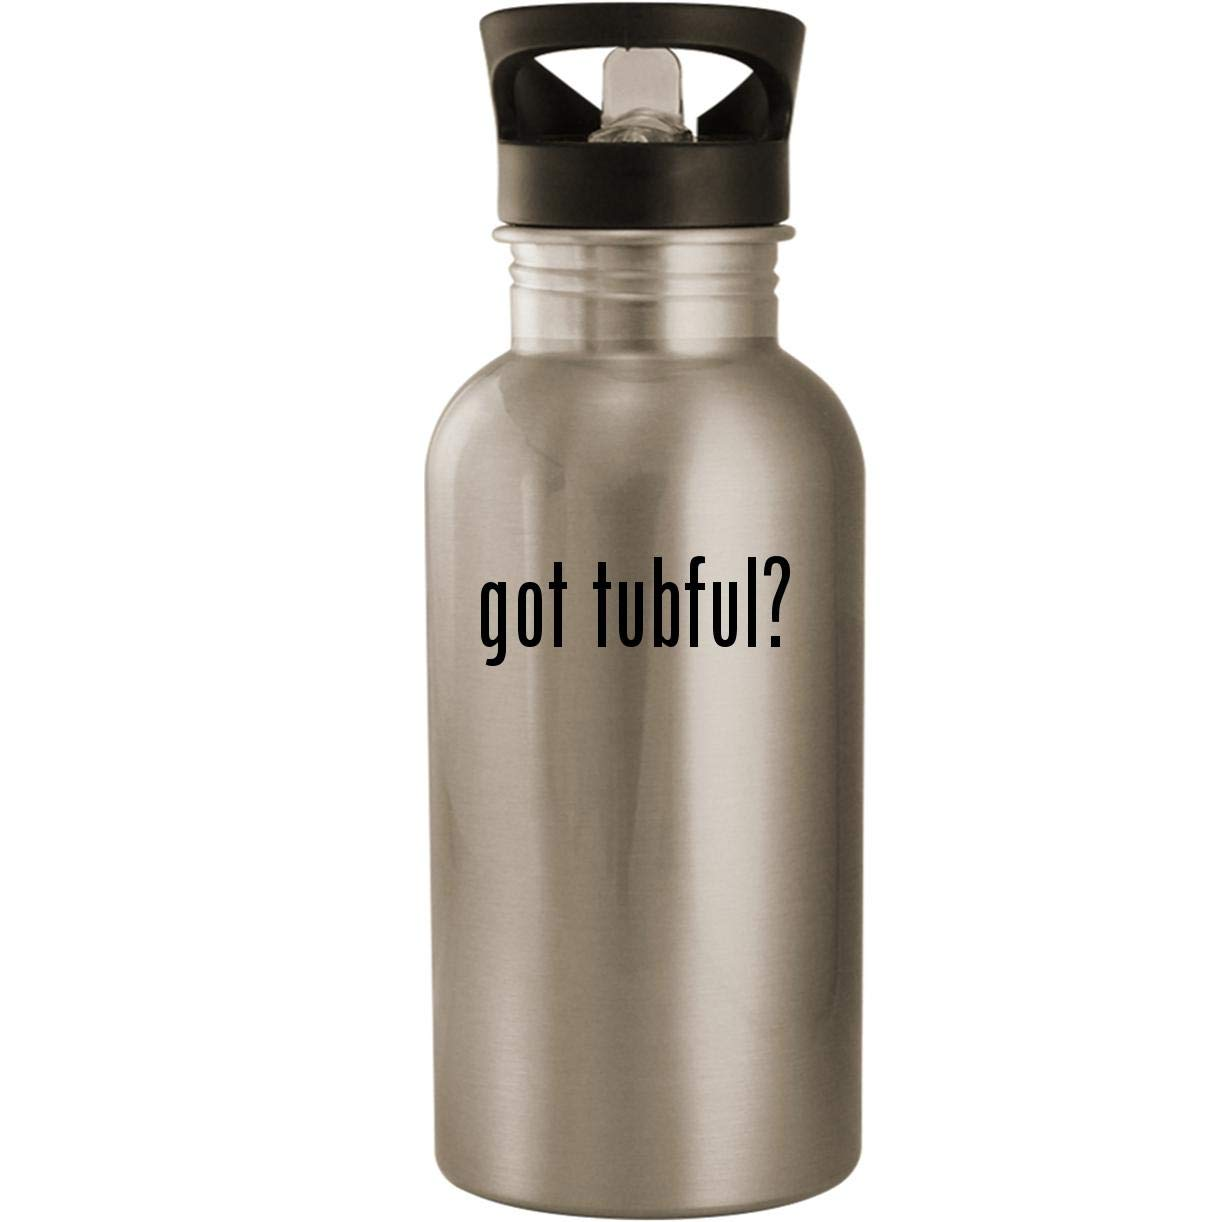 got tubful? - Stainless Steel 20oz Road Ready Water Bottle, Silver